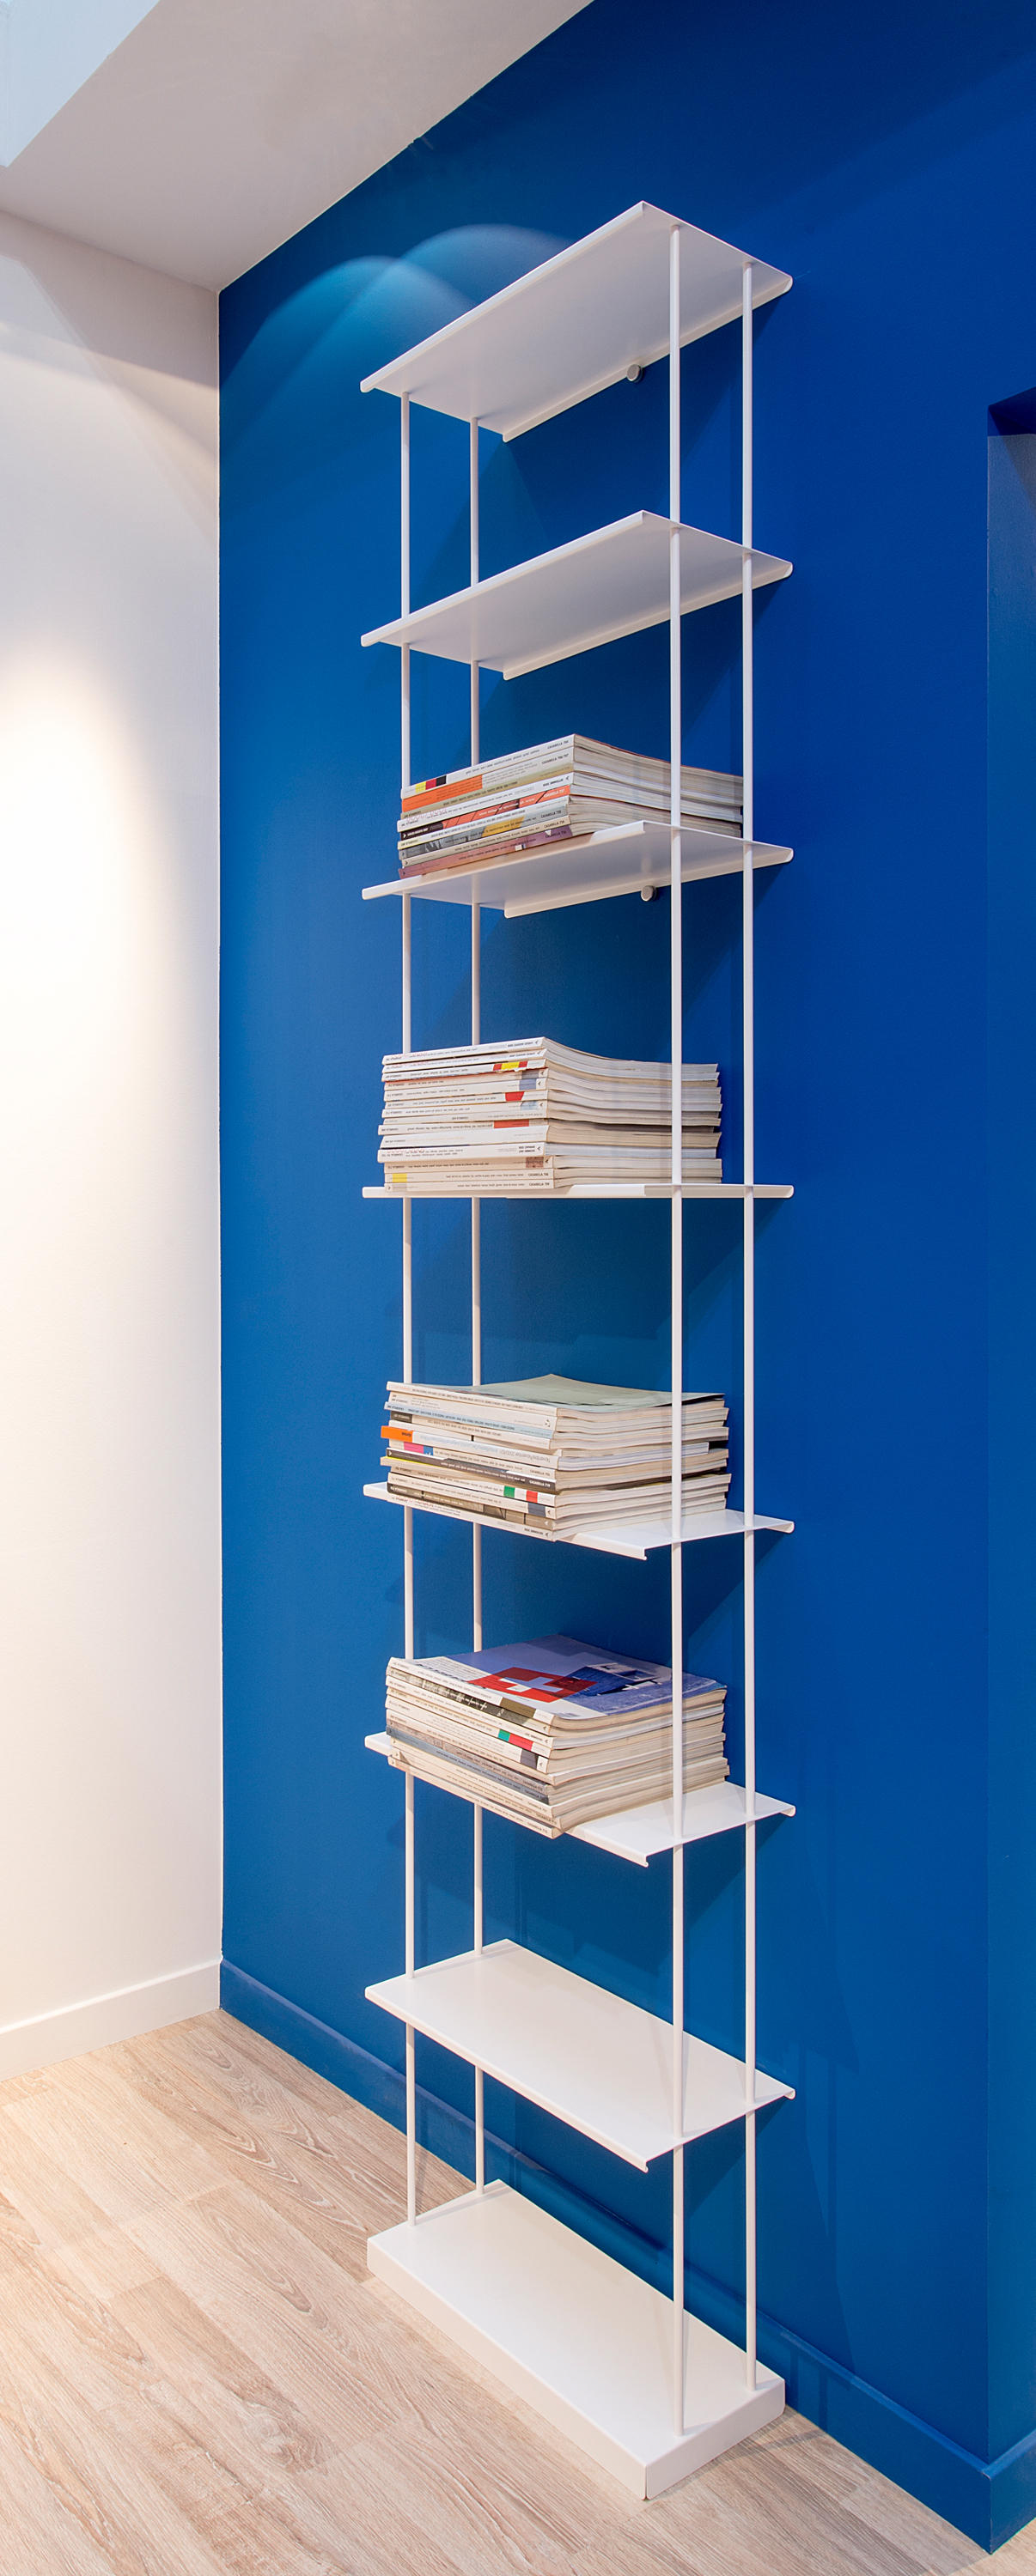 KROSSING MAXI BOOKSHELF - Office shelving systems from Kriptonite ...